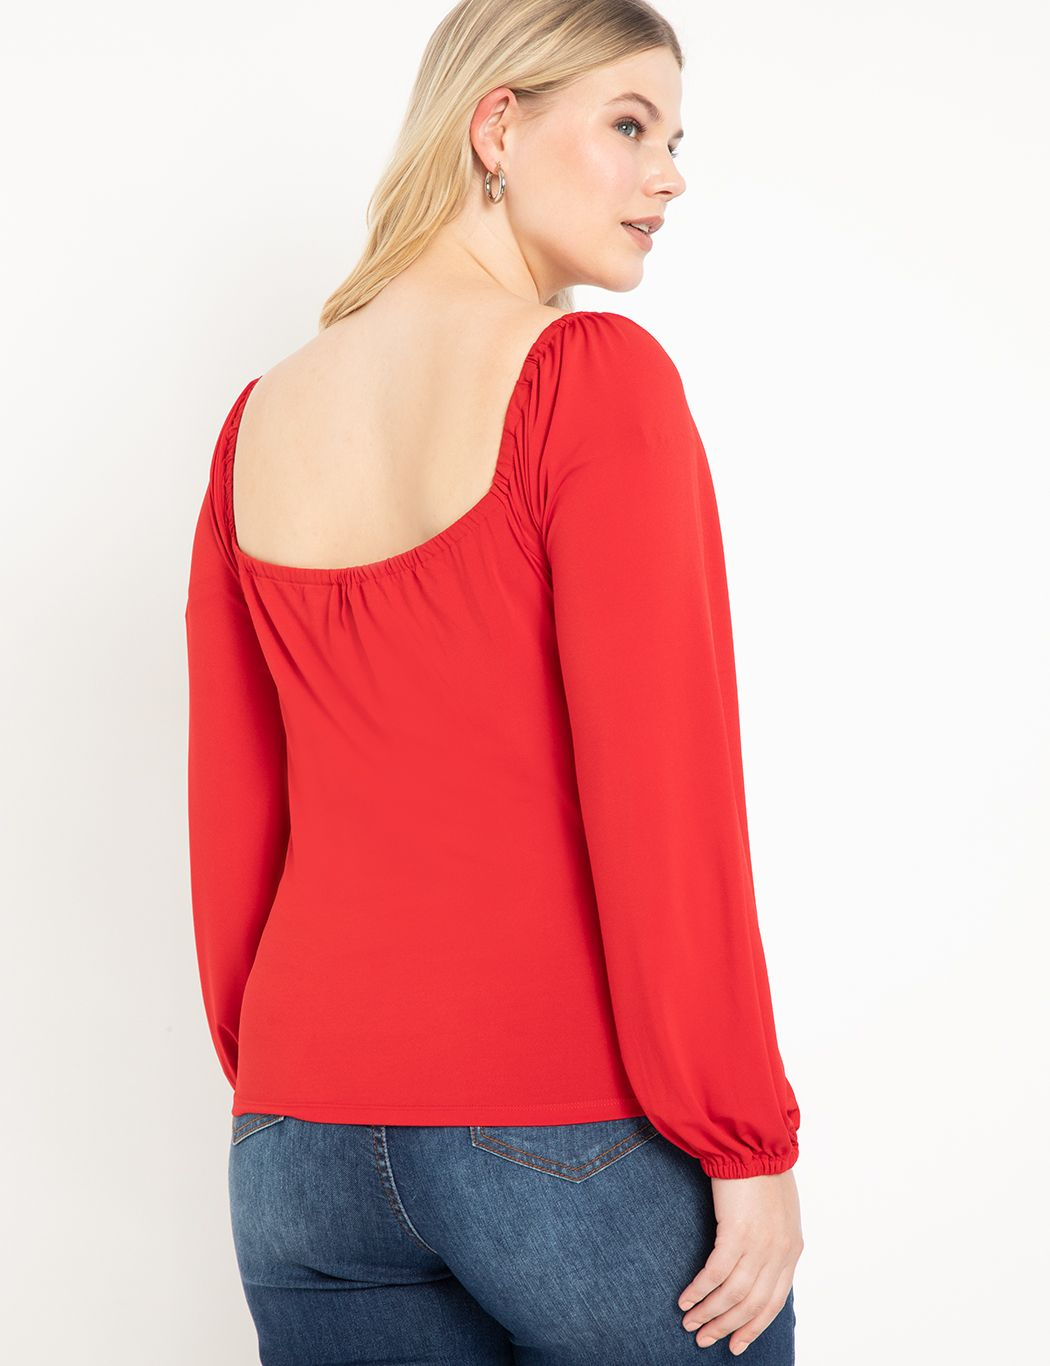 Sweetheart Top with Puff Sleeve